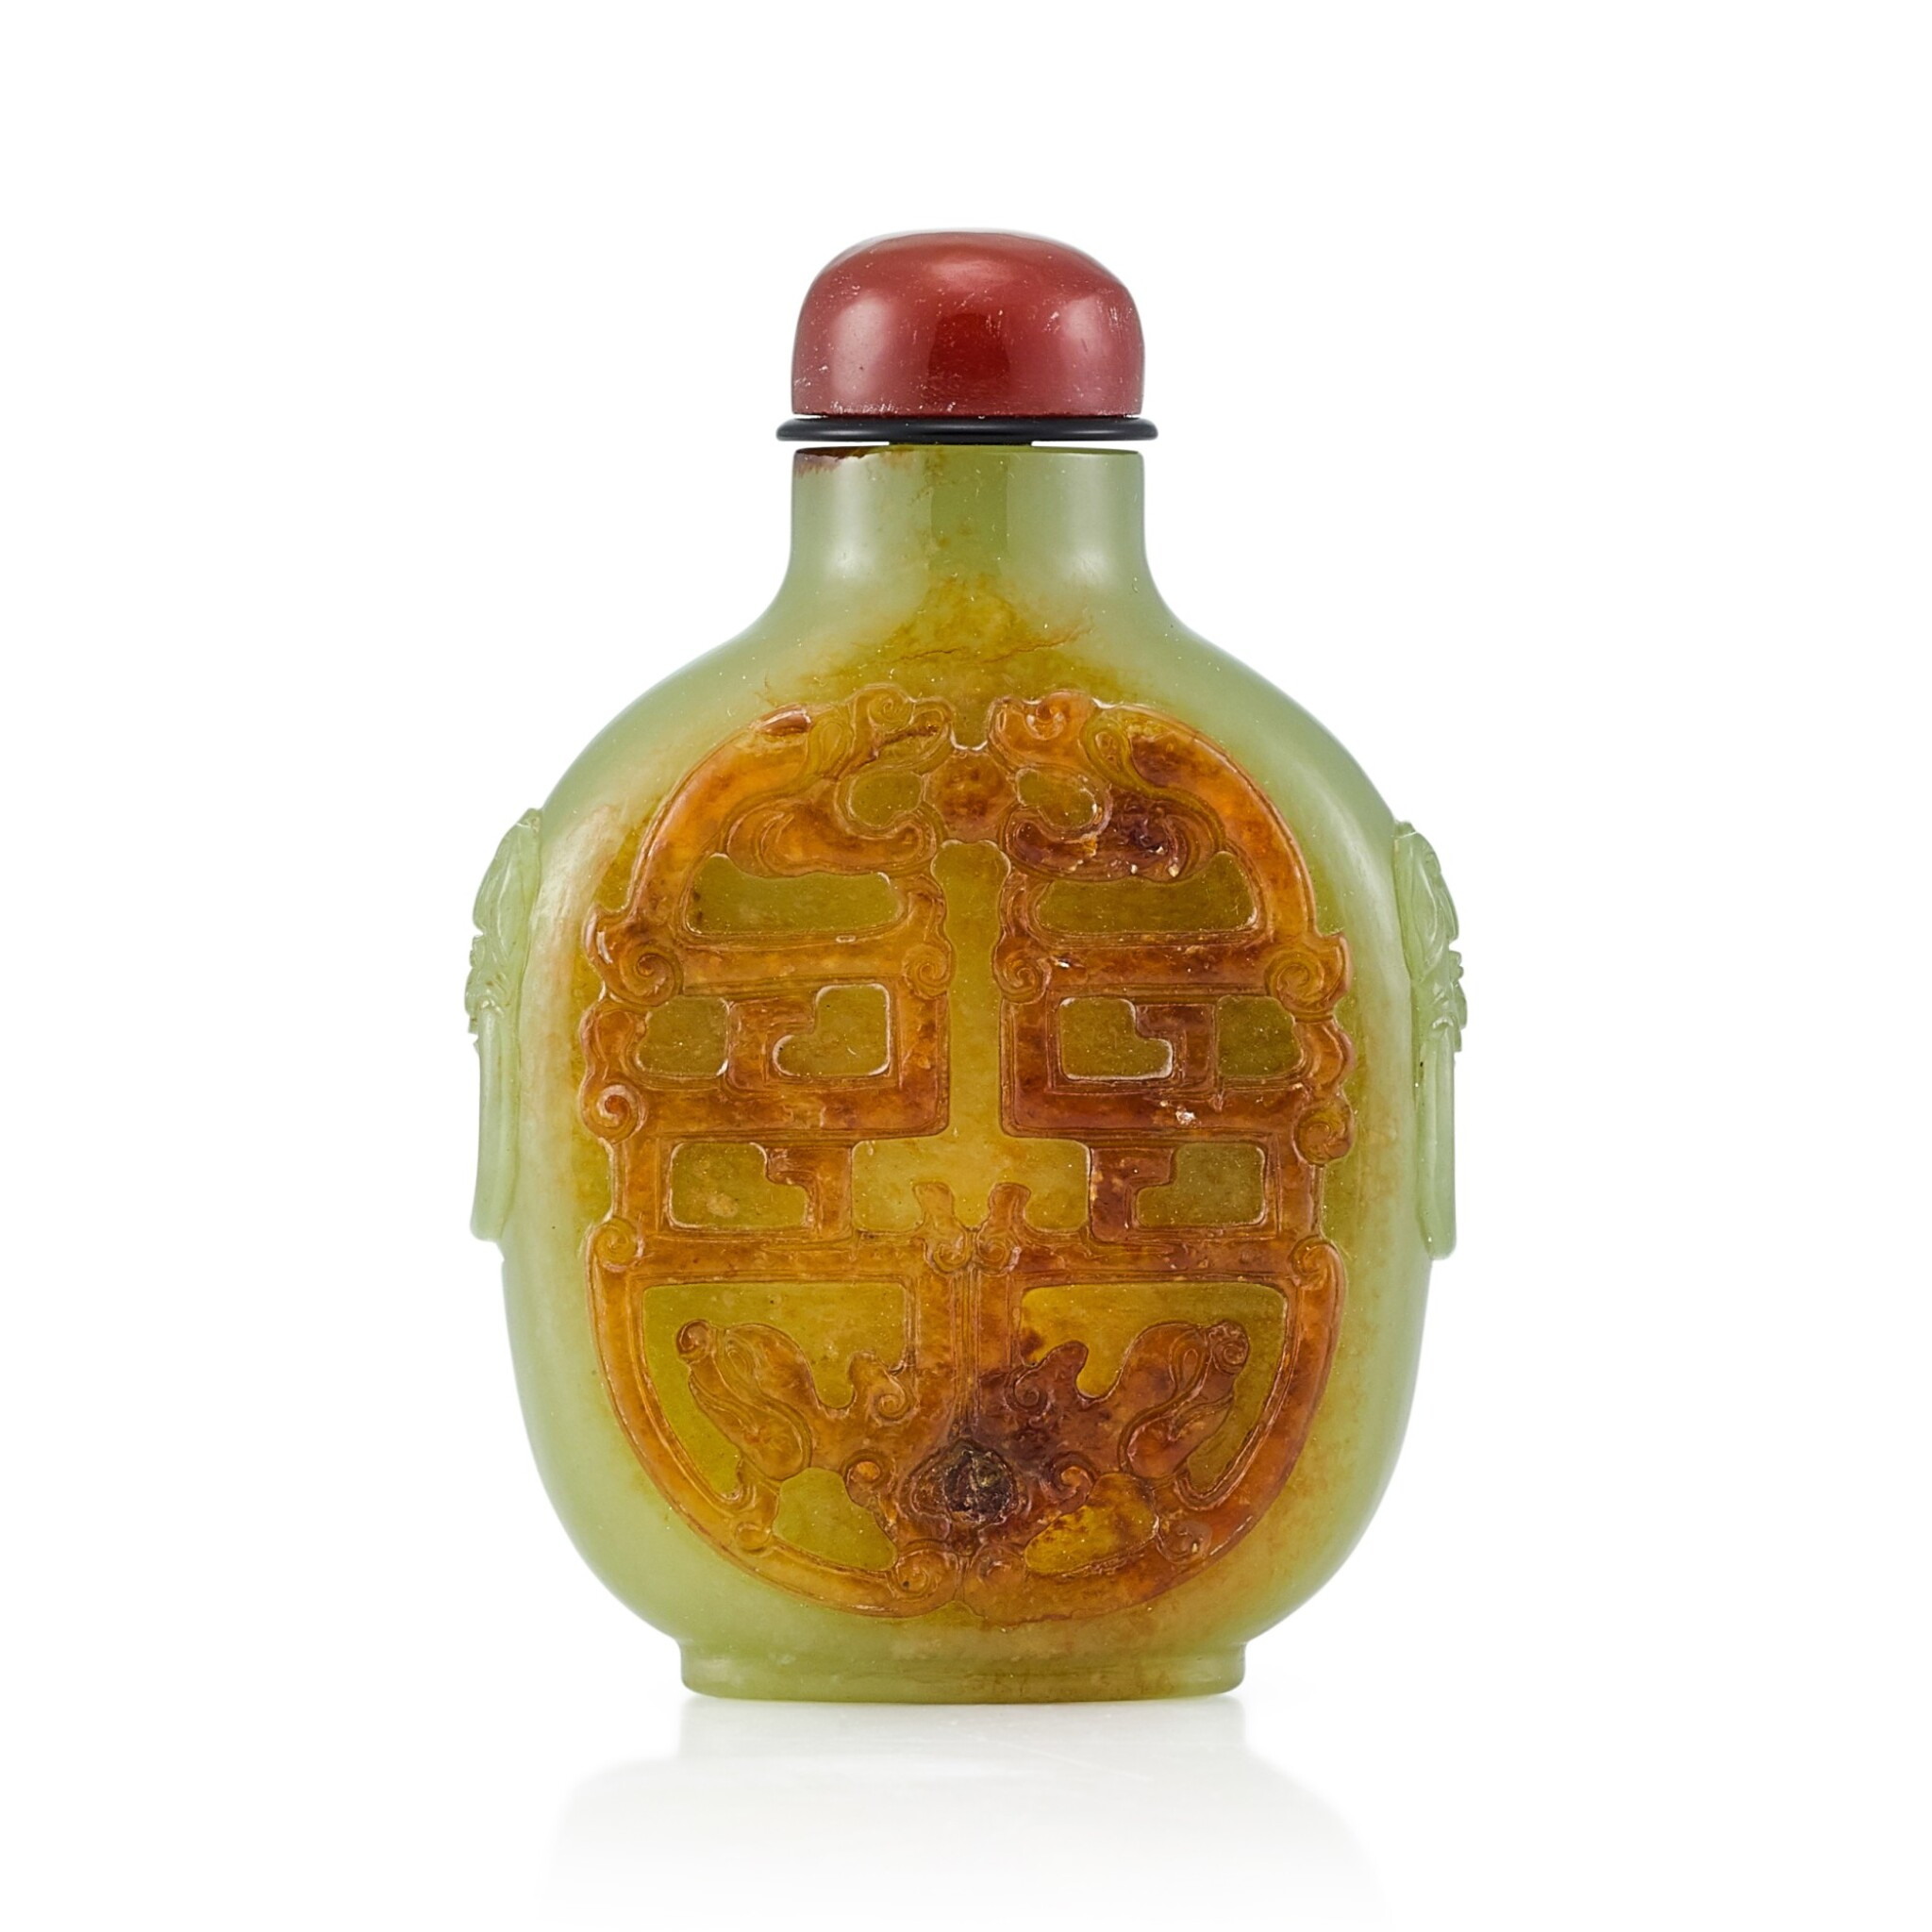 View full screen - View 1 of Lot 3027. A Yellow and Russet Jade 'Dragons' Snuff Bottle Qing Dynasty, Qianlong Period   清乾隆 黃玉夔龍紋鋪獸首鼻煙壺.